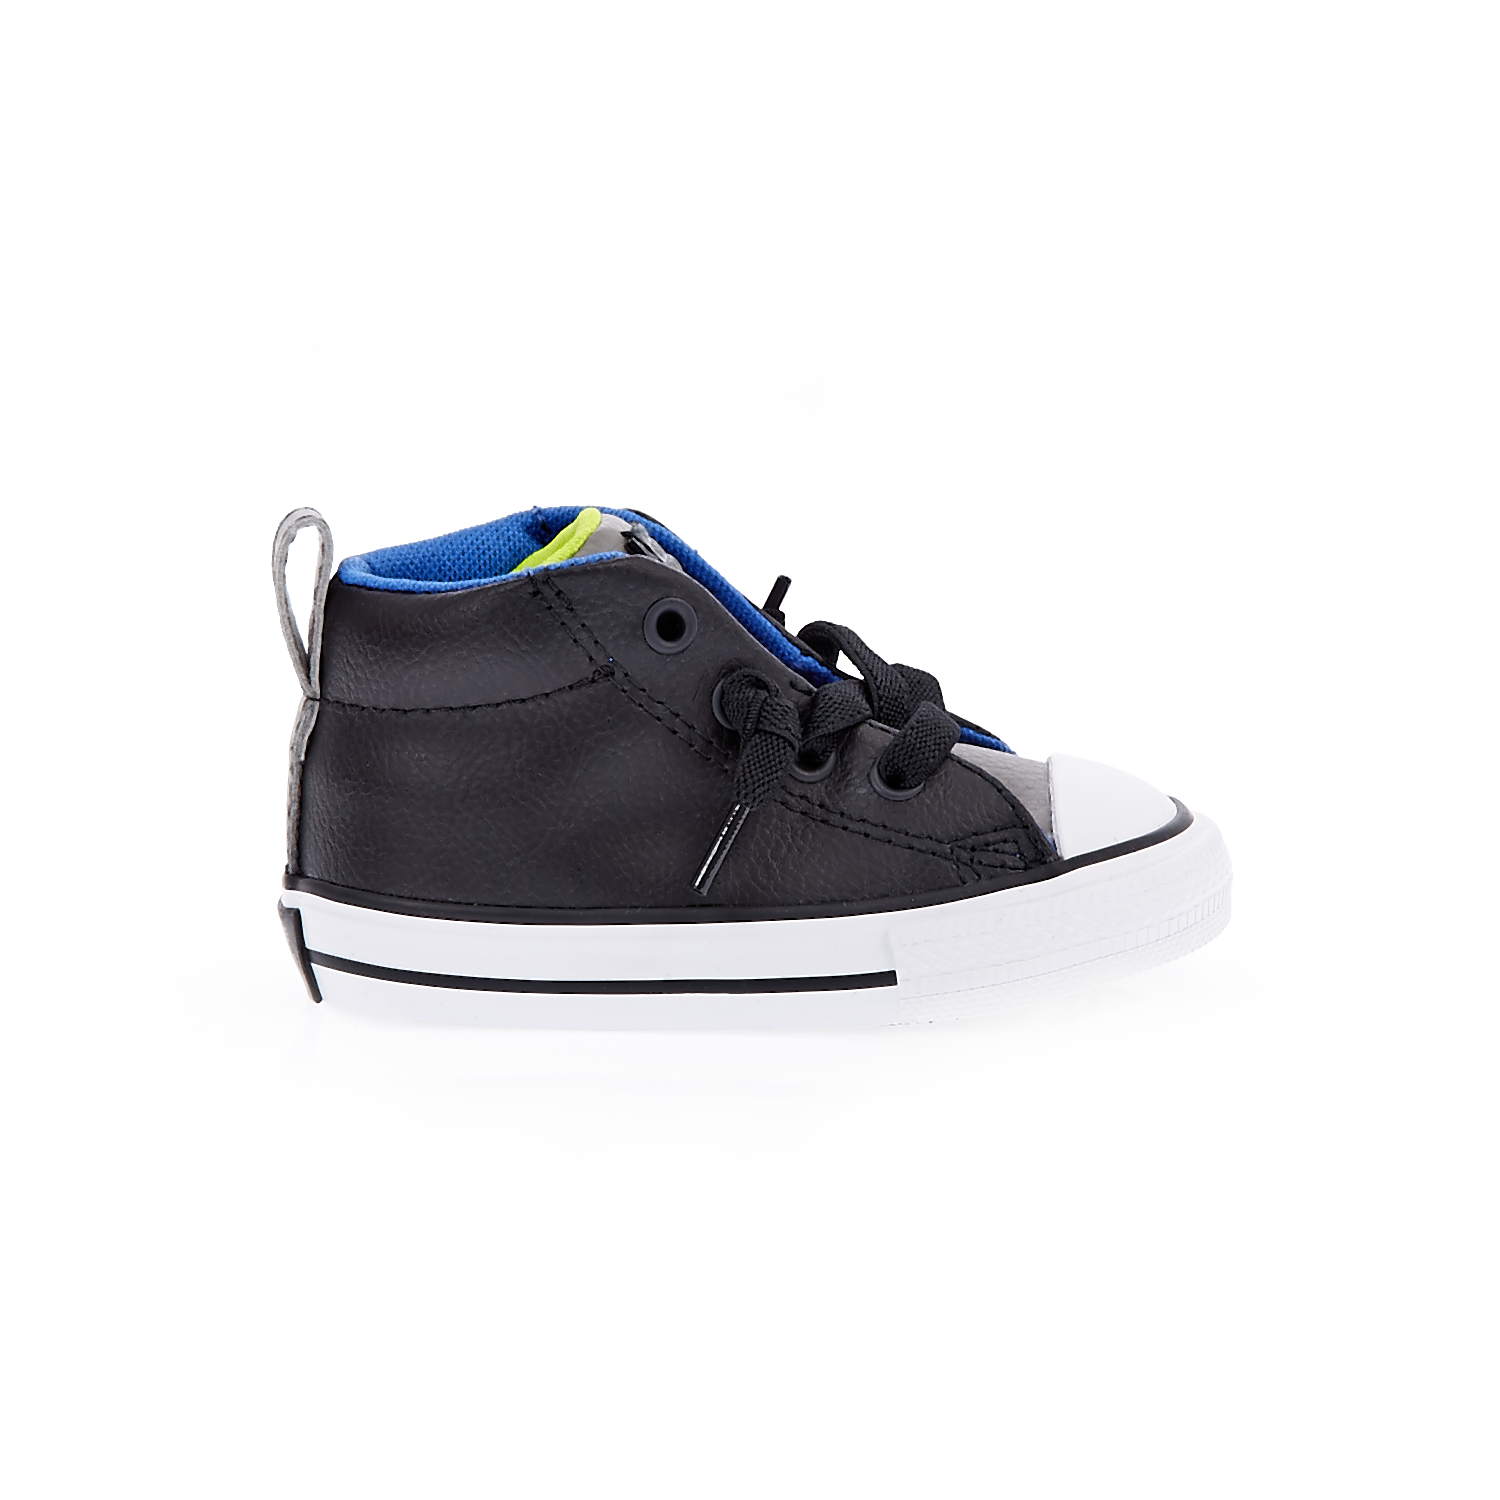 CONVERSE – Βρεφικά παπούτσια Chuck Taylor All Star Street M μαύρα